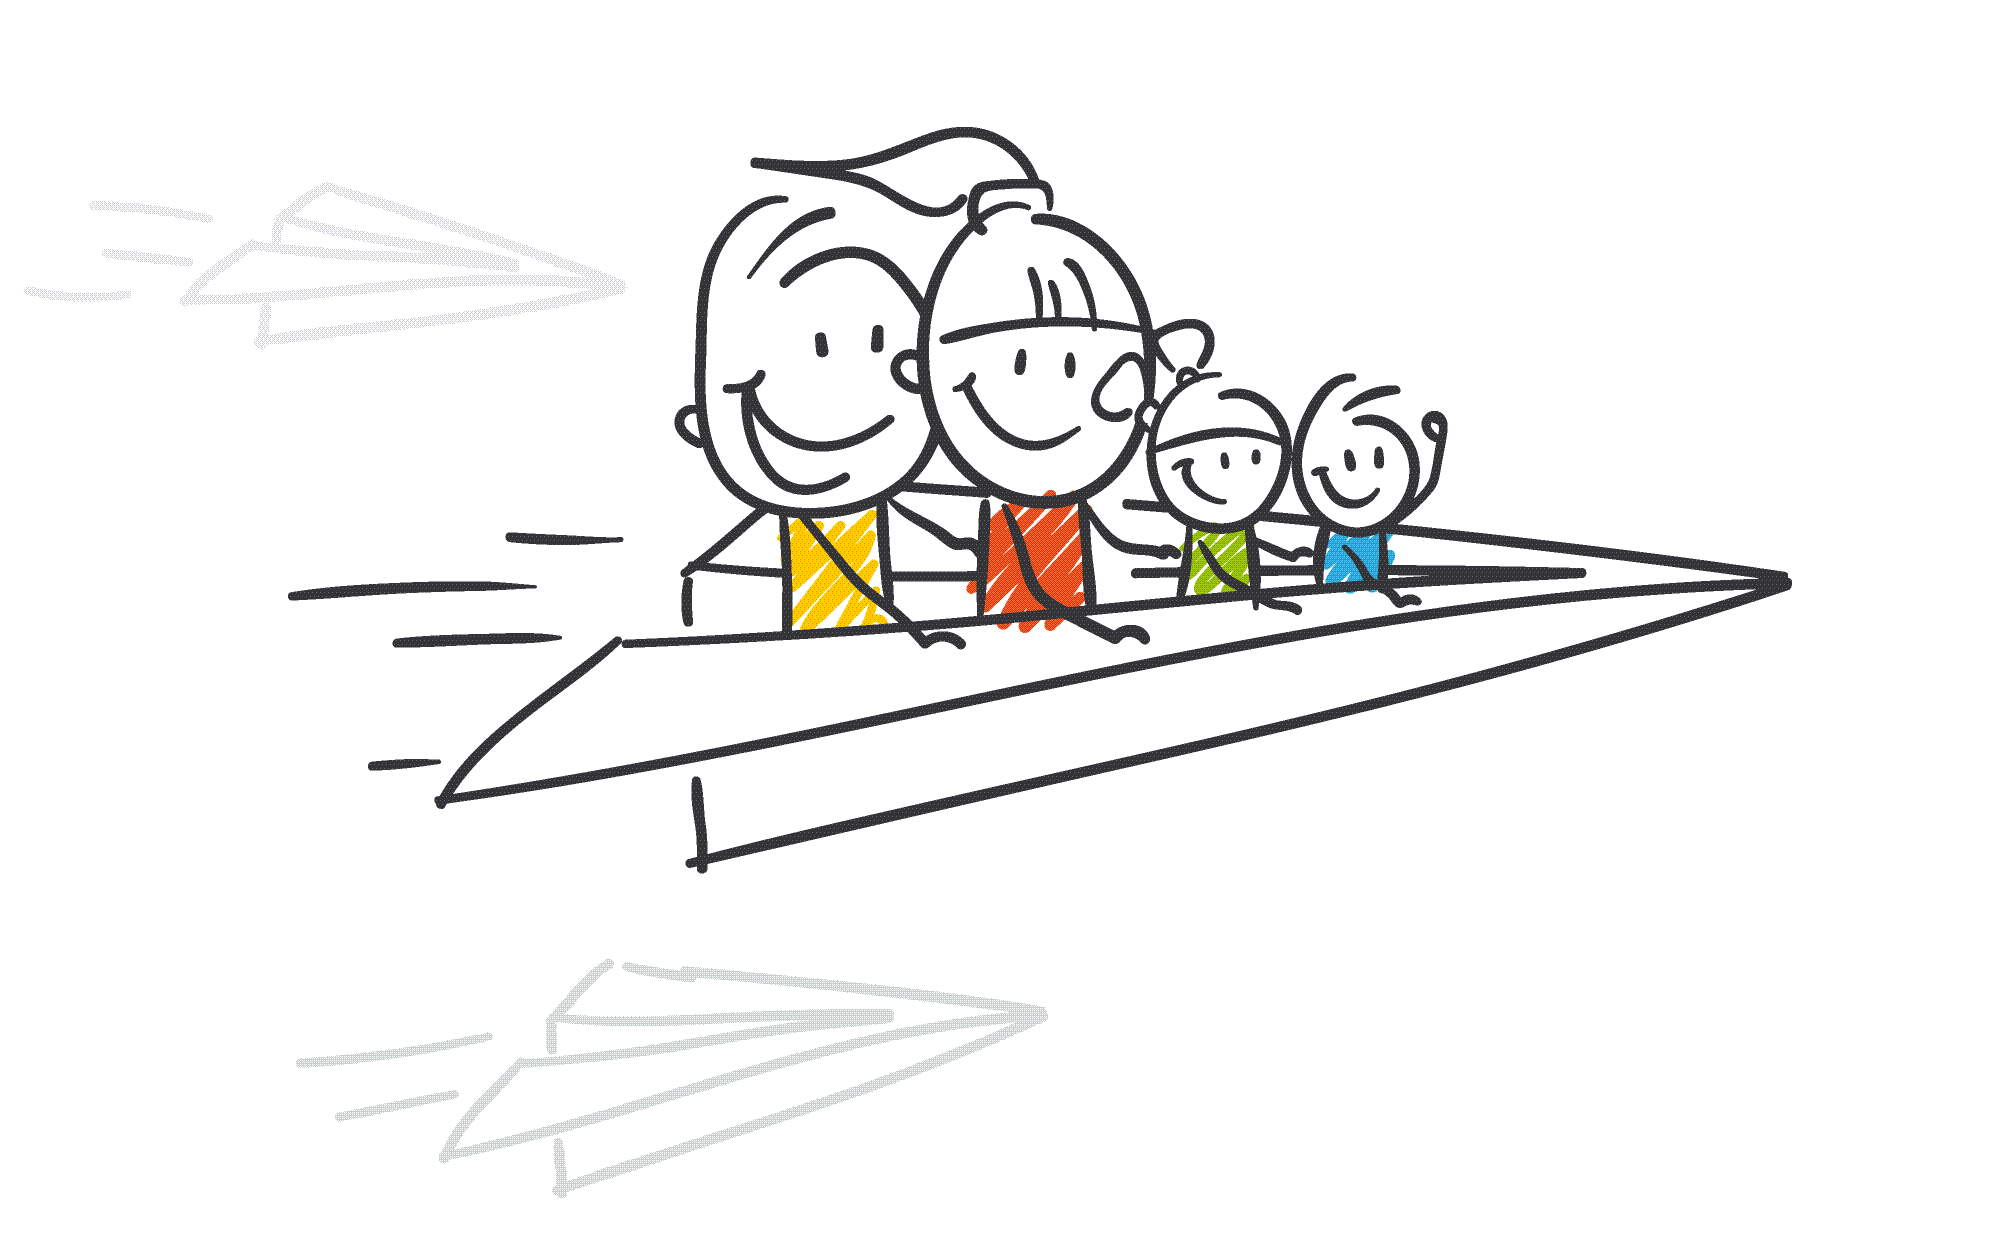 Stick family is flying a paper airplane